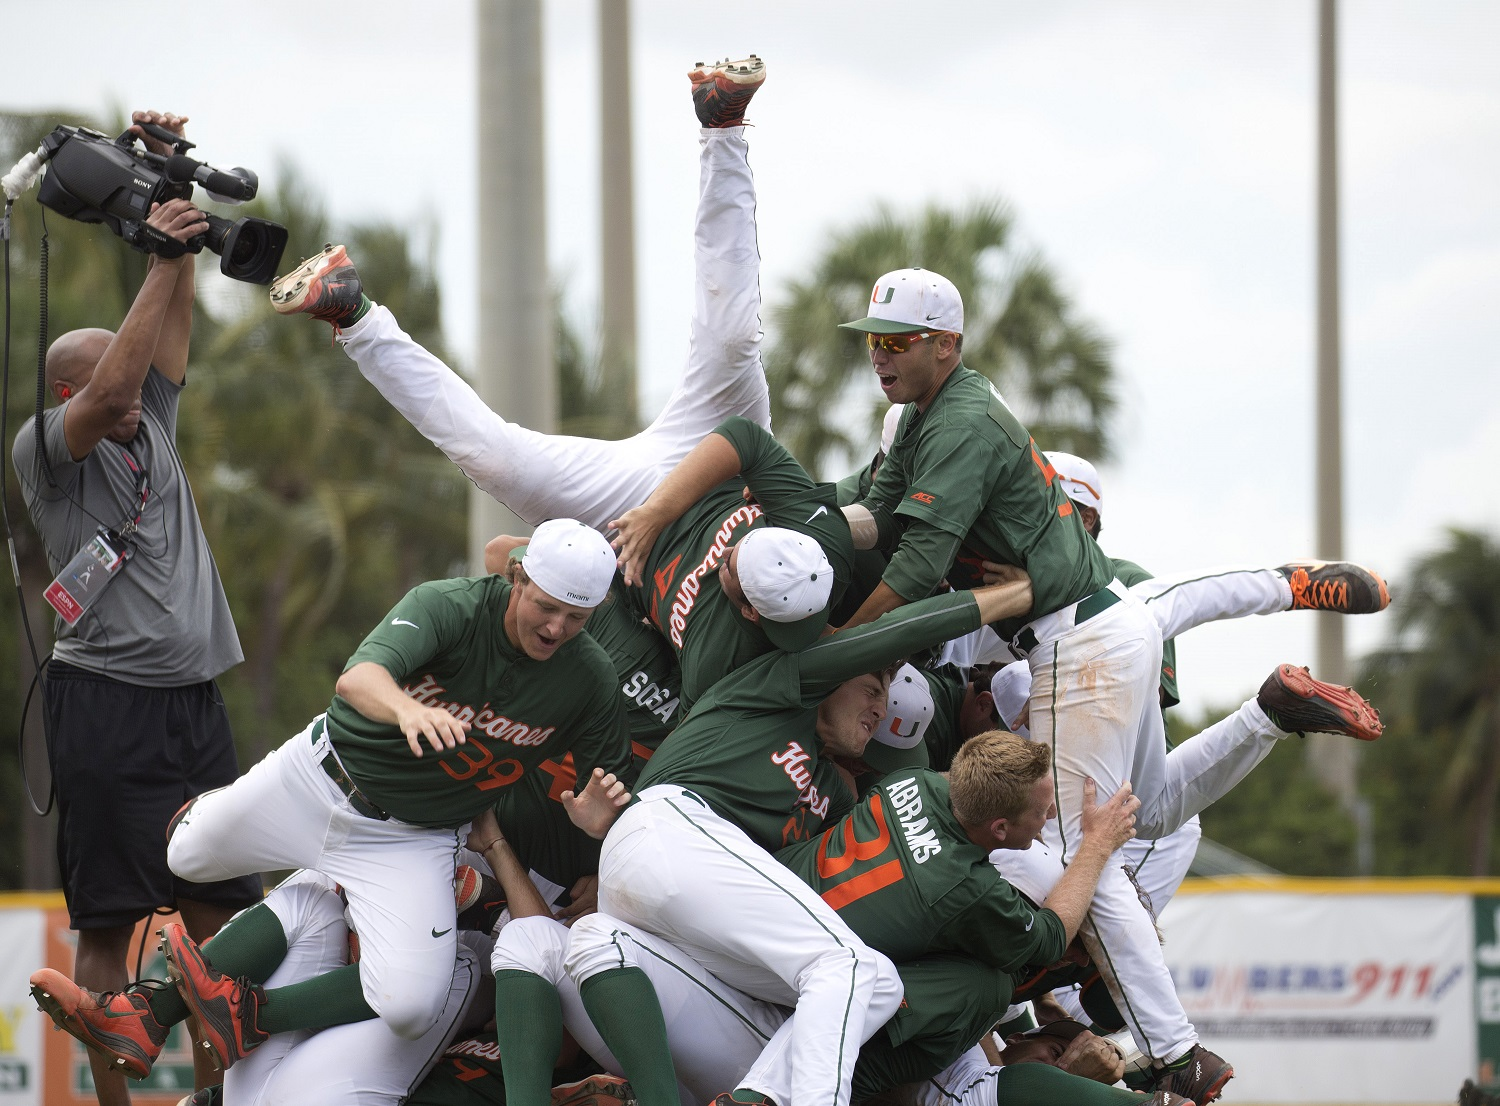 Miami Hurricane players celebrate after a super regional game of the NCAA college baseball tournament against VCU, Saturday, June 6, 2015, in Coral Gables, Fla.Miami won 10-3. (AP Photo/J Pat Carter)